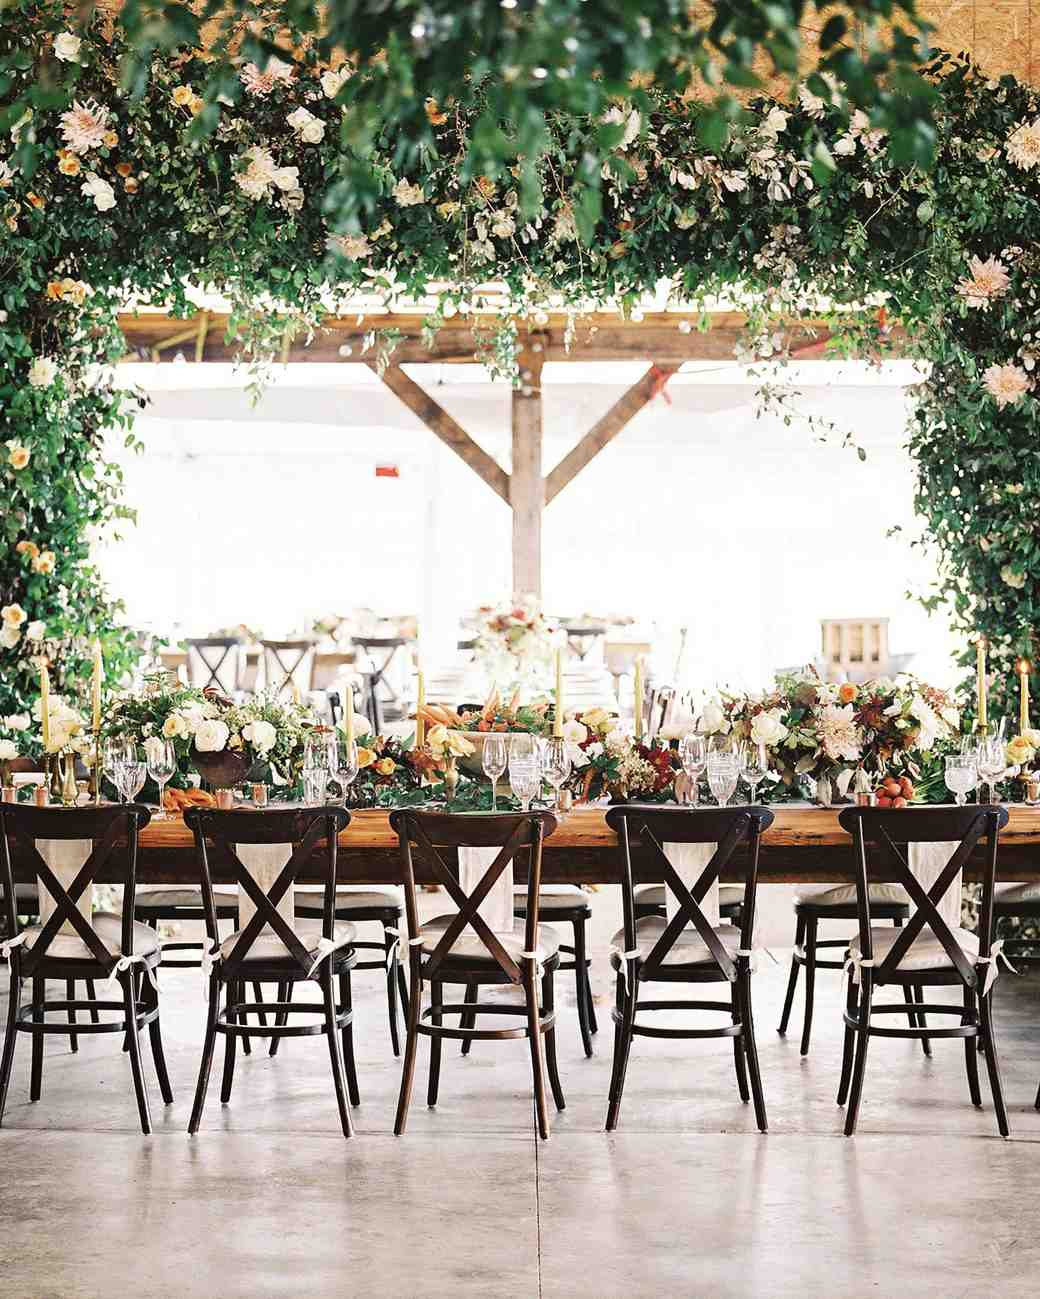 Wedding Head Table Flowers: An Elegant-Meets-Rustic Farm Wedding In North Carolina